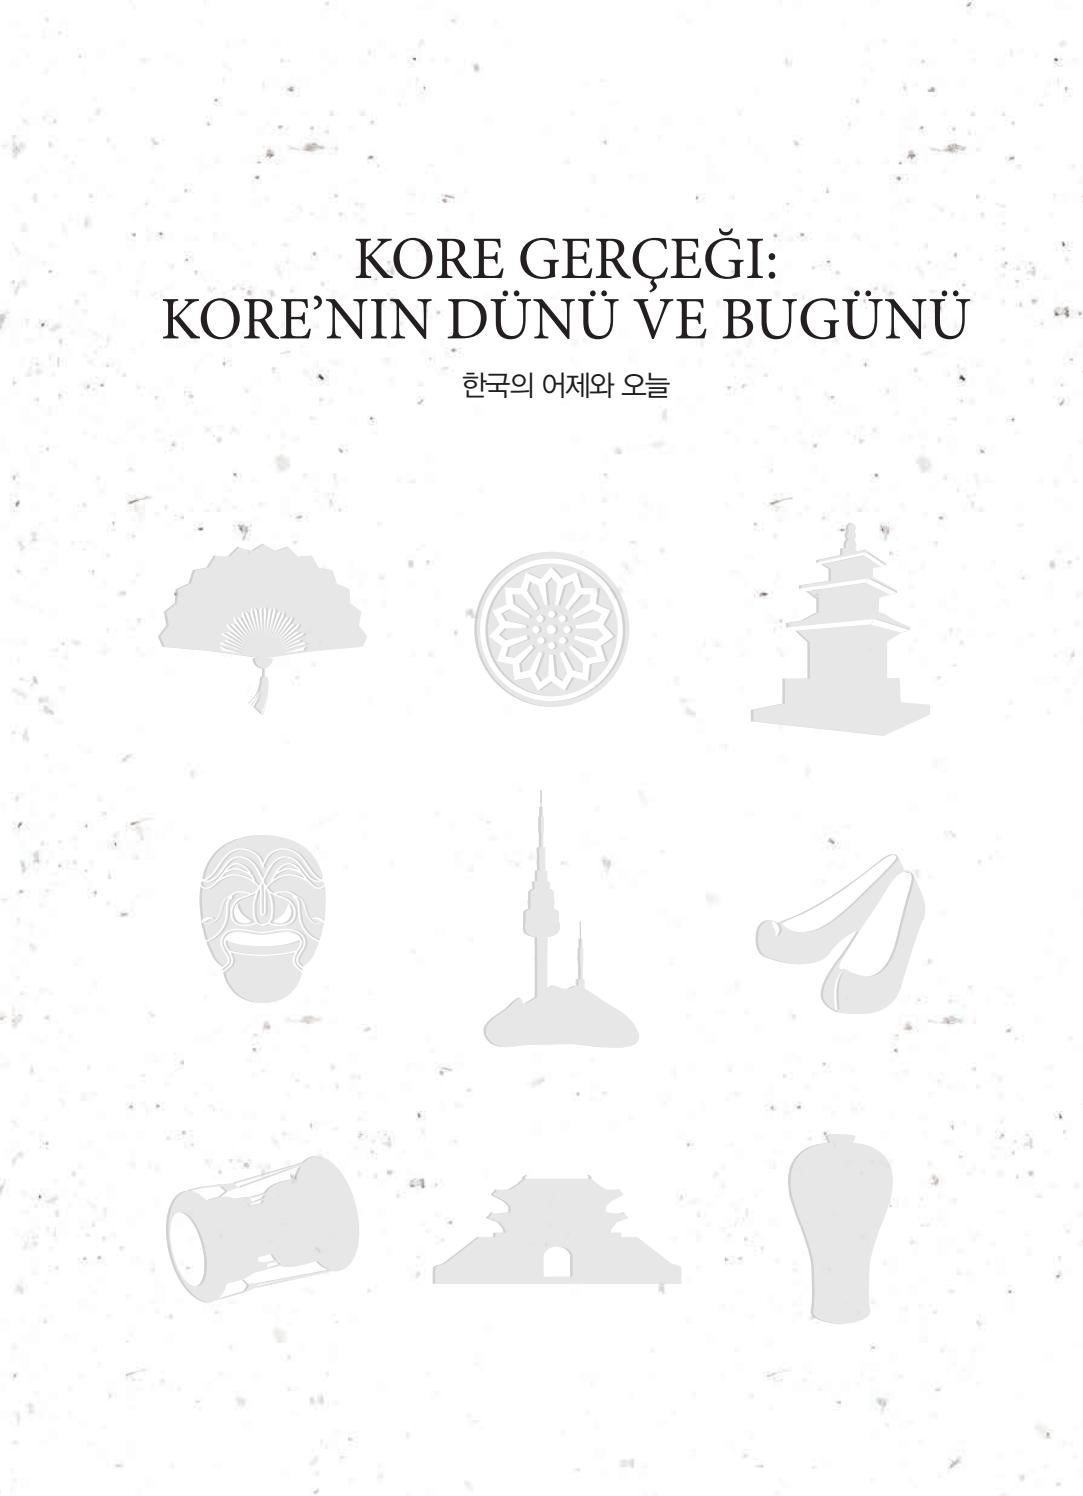 Factsaboutkorea 1611logomod Tr By Kocis Issuu